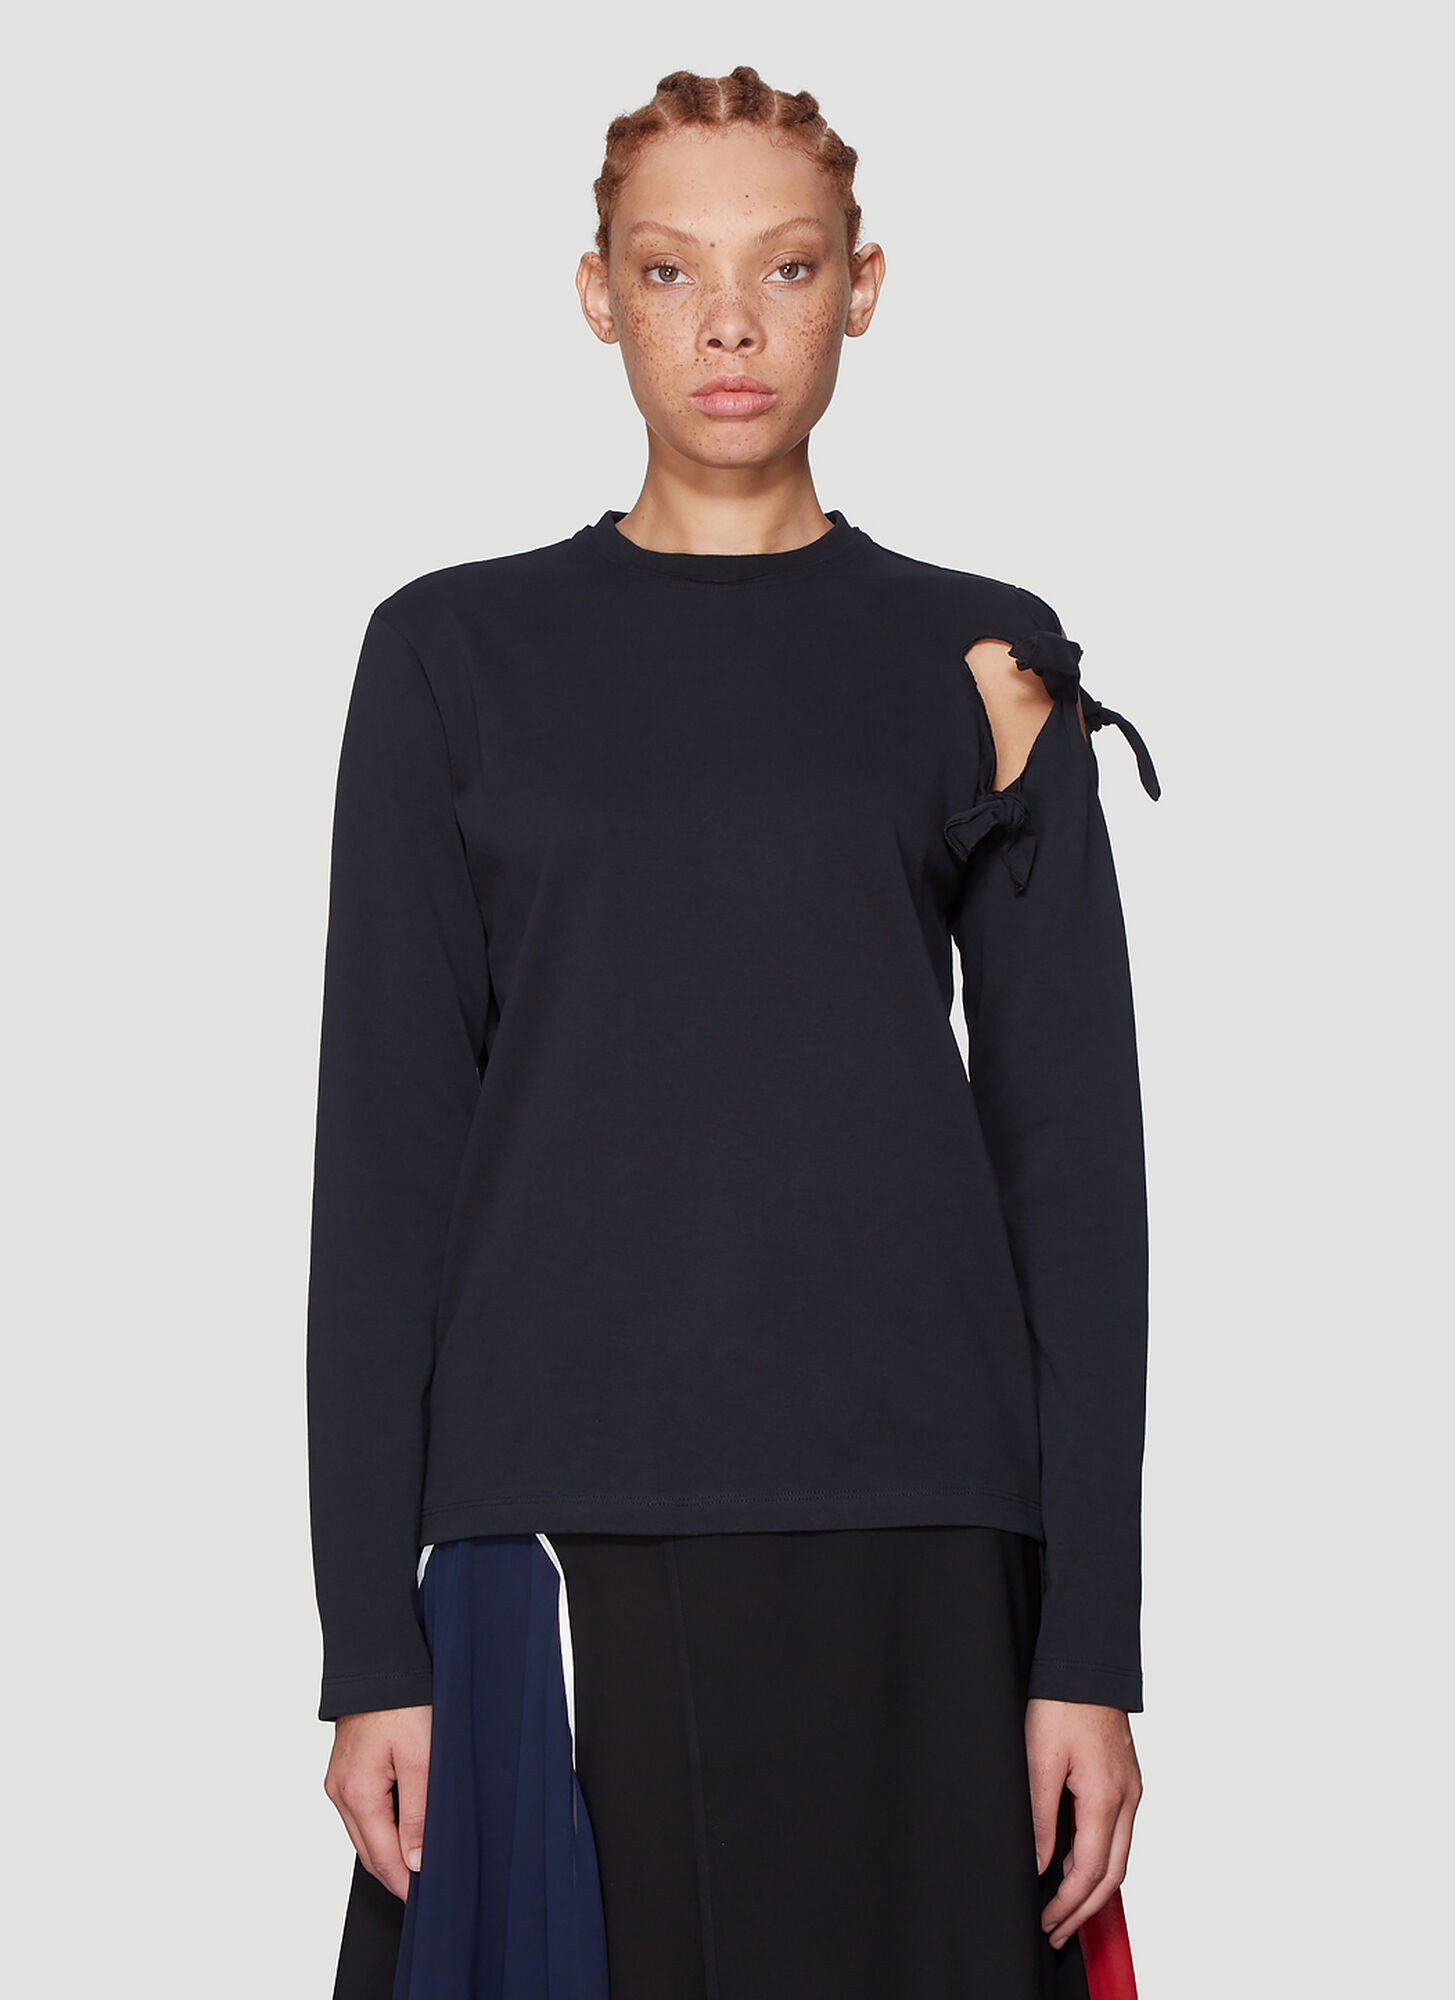 JW Anderson Knot Detail Long Sleeve T-Shirt in Black